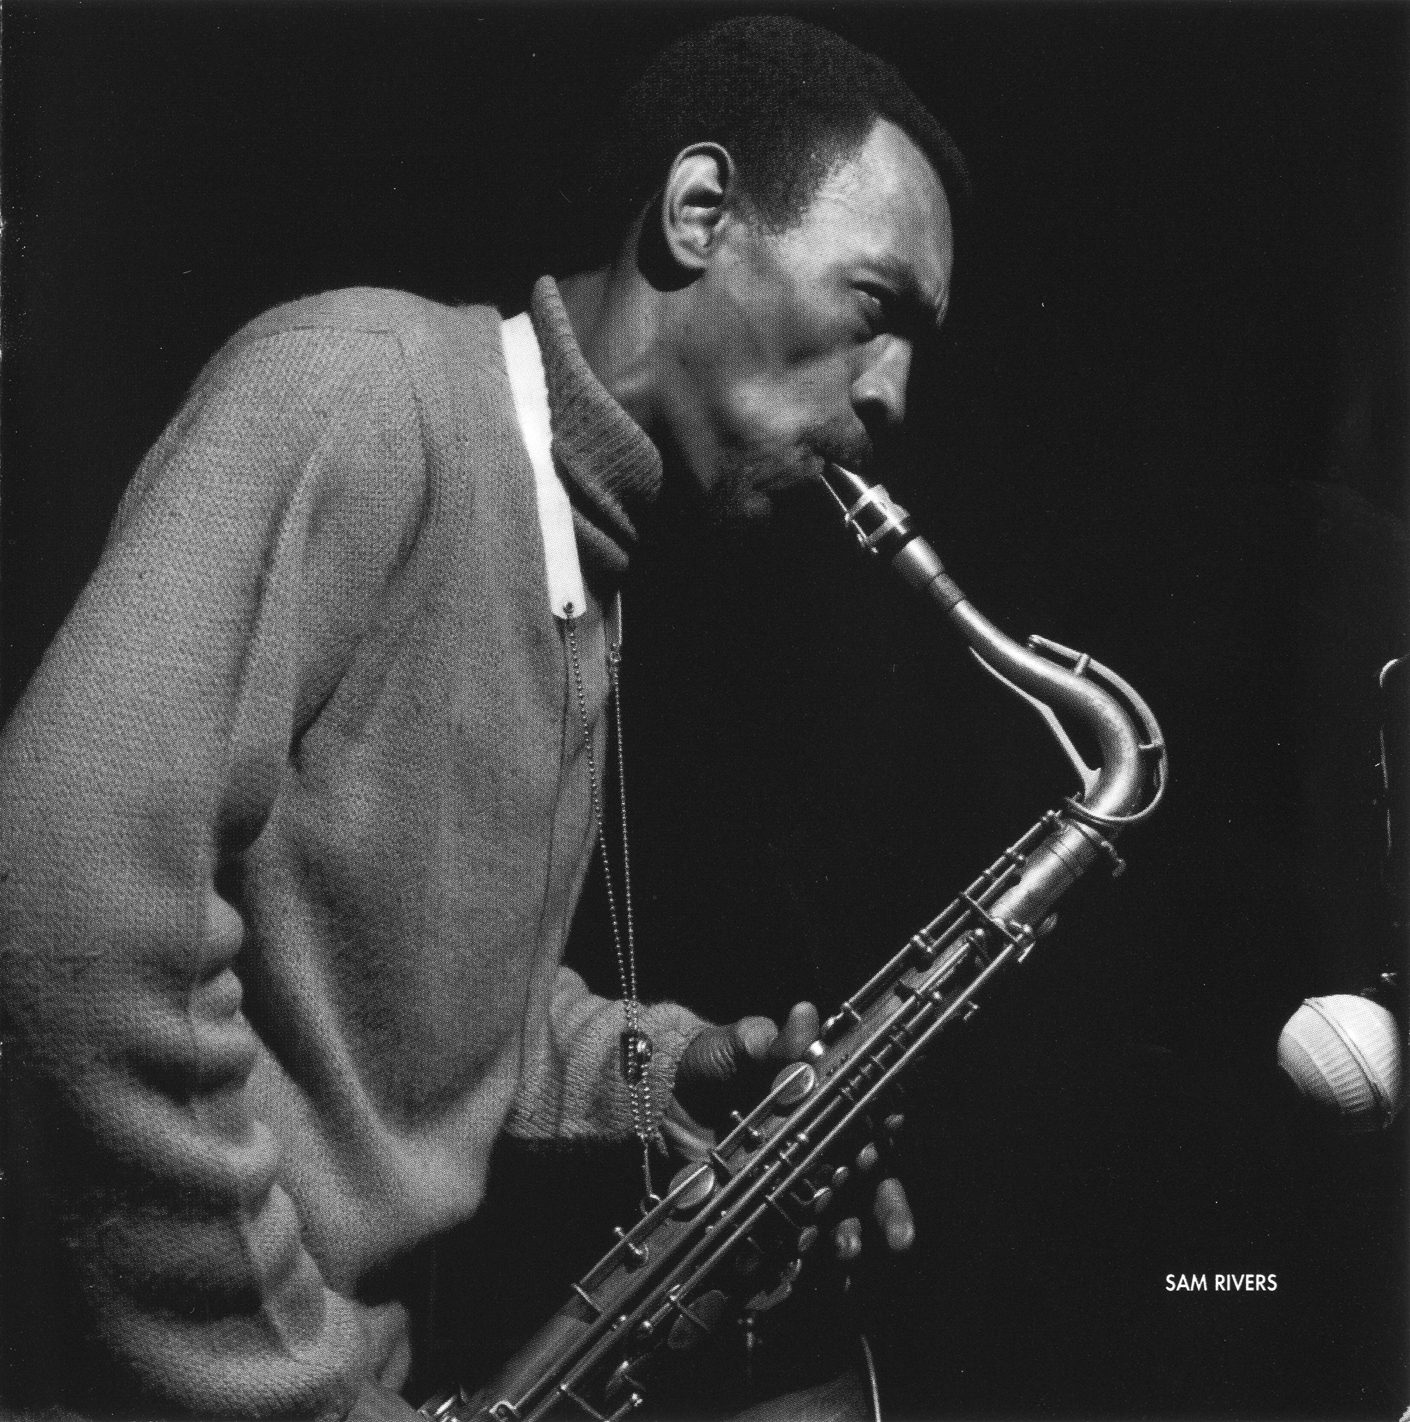 Sam Rivers